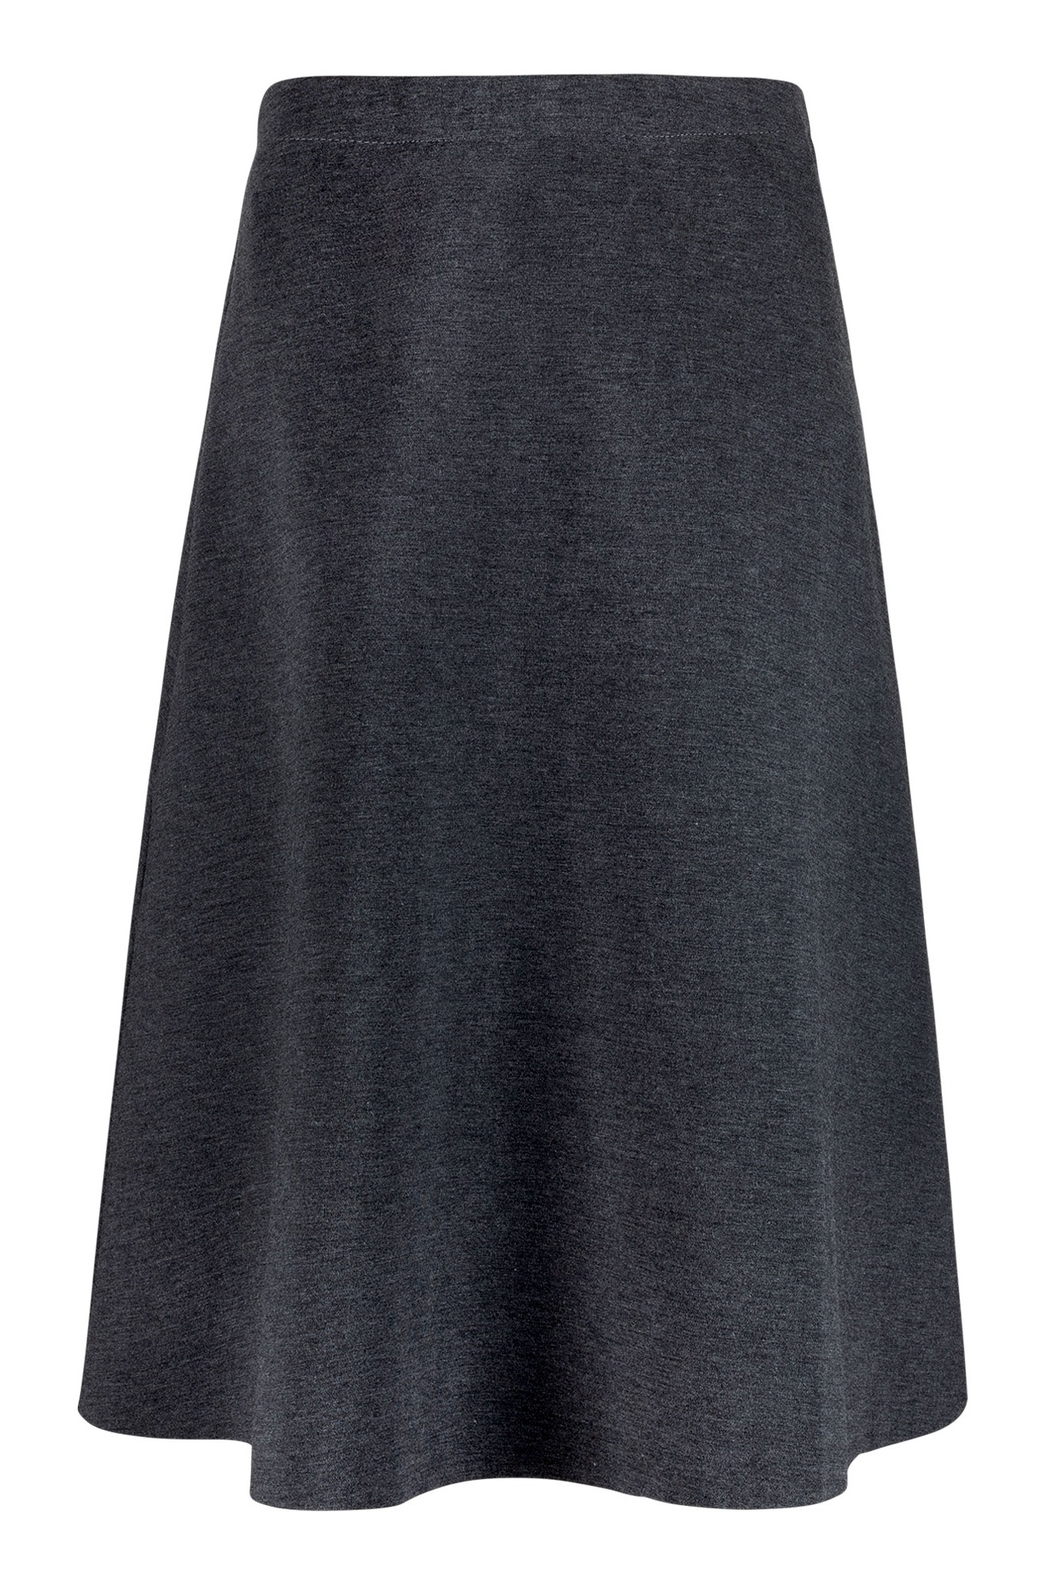 Meli by FAME 3 PANEL 25 INCH SKIRT - Front Cropped Image